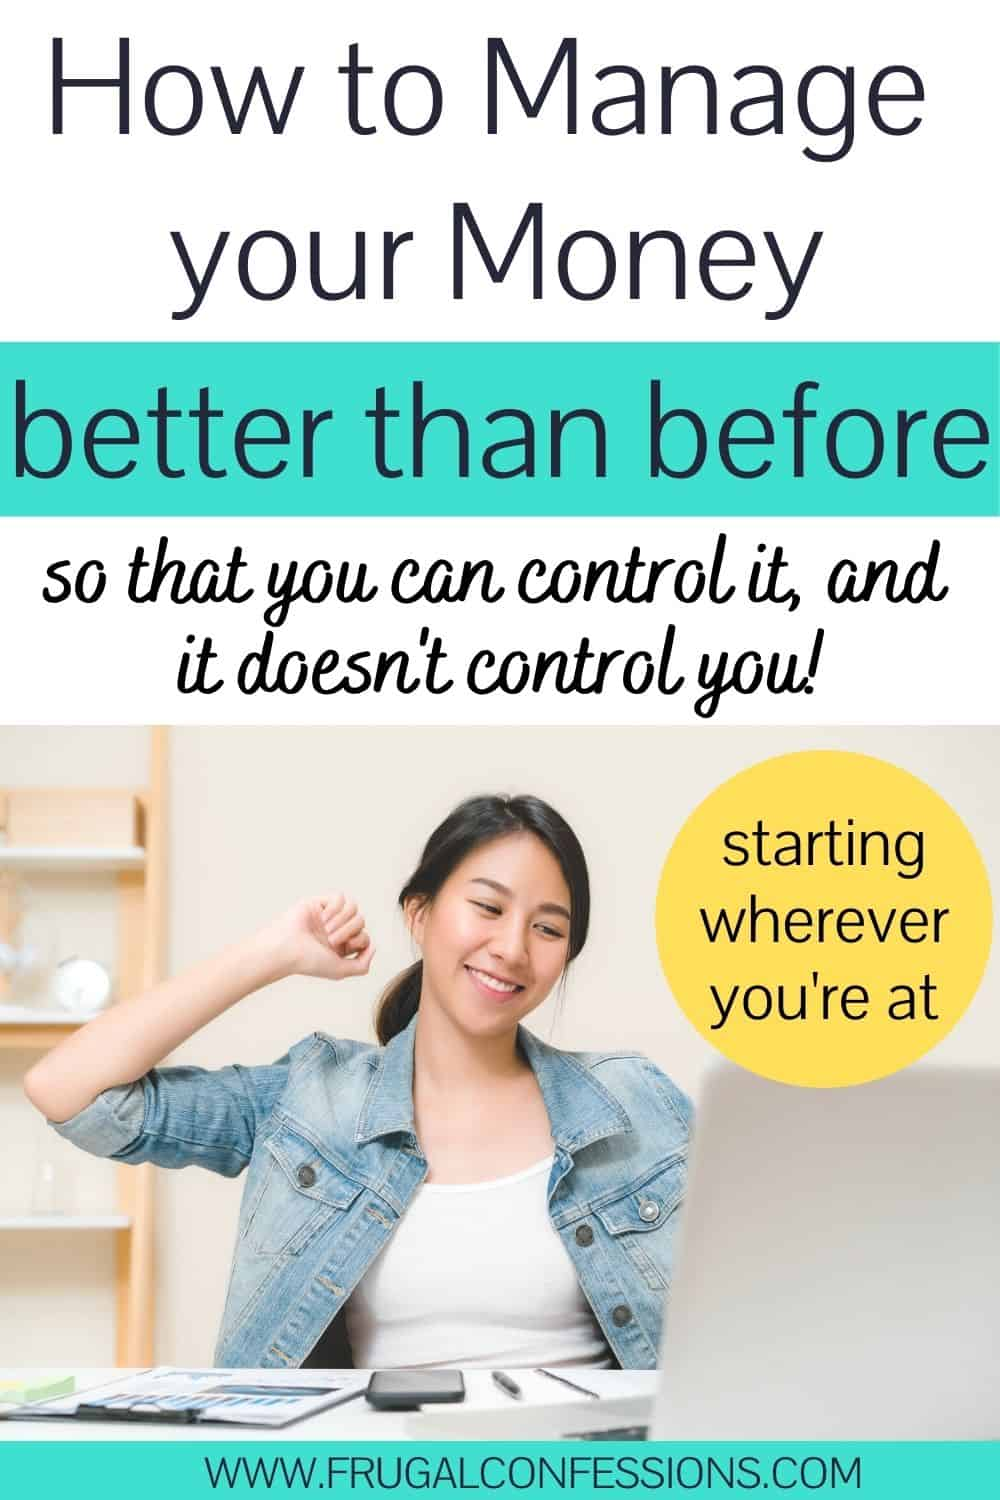 """woman feeling triumphant at computer with calculator, text overlay """"how to manage your money better than before so that you can control it"""""""